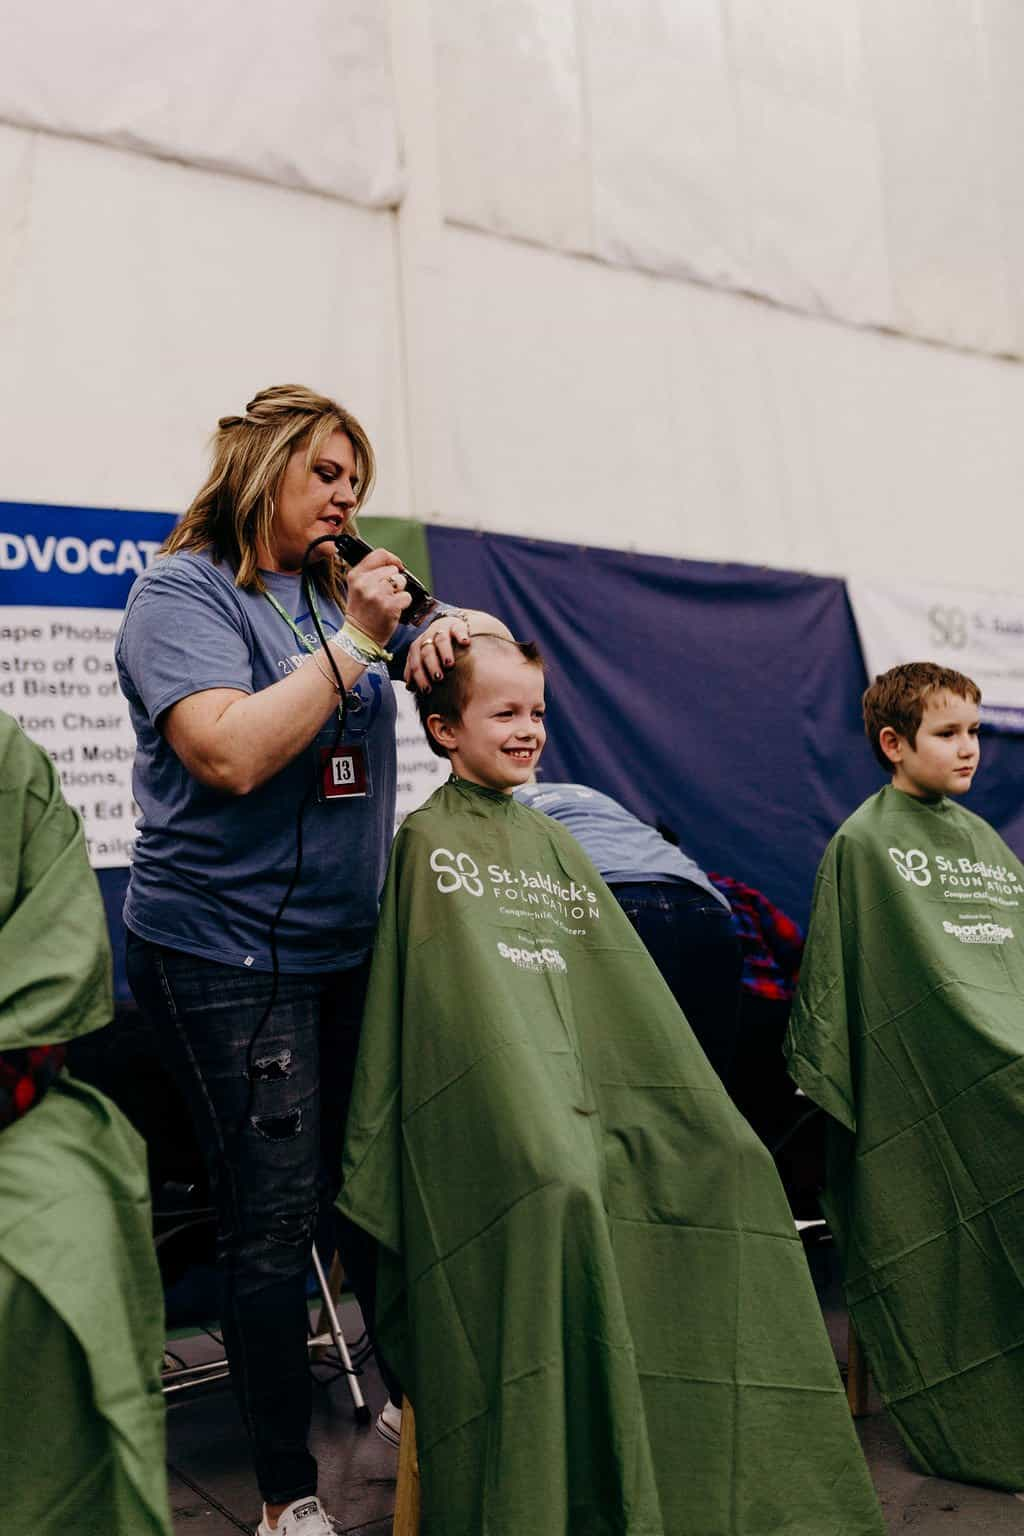 St. Baldricks | I bet you wouldn't shave your head 182